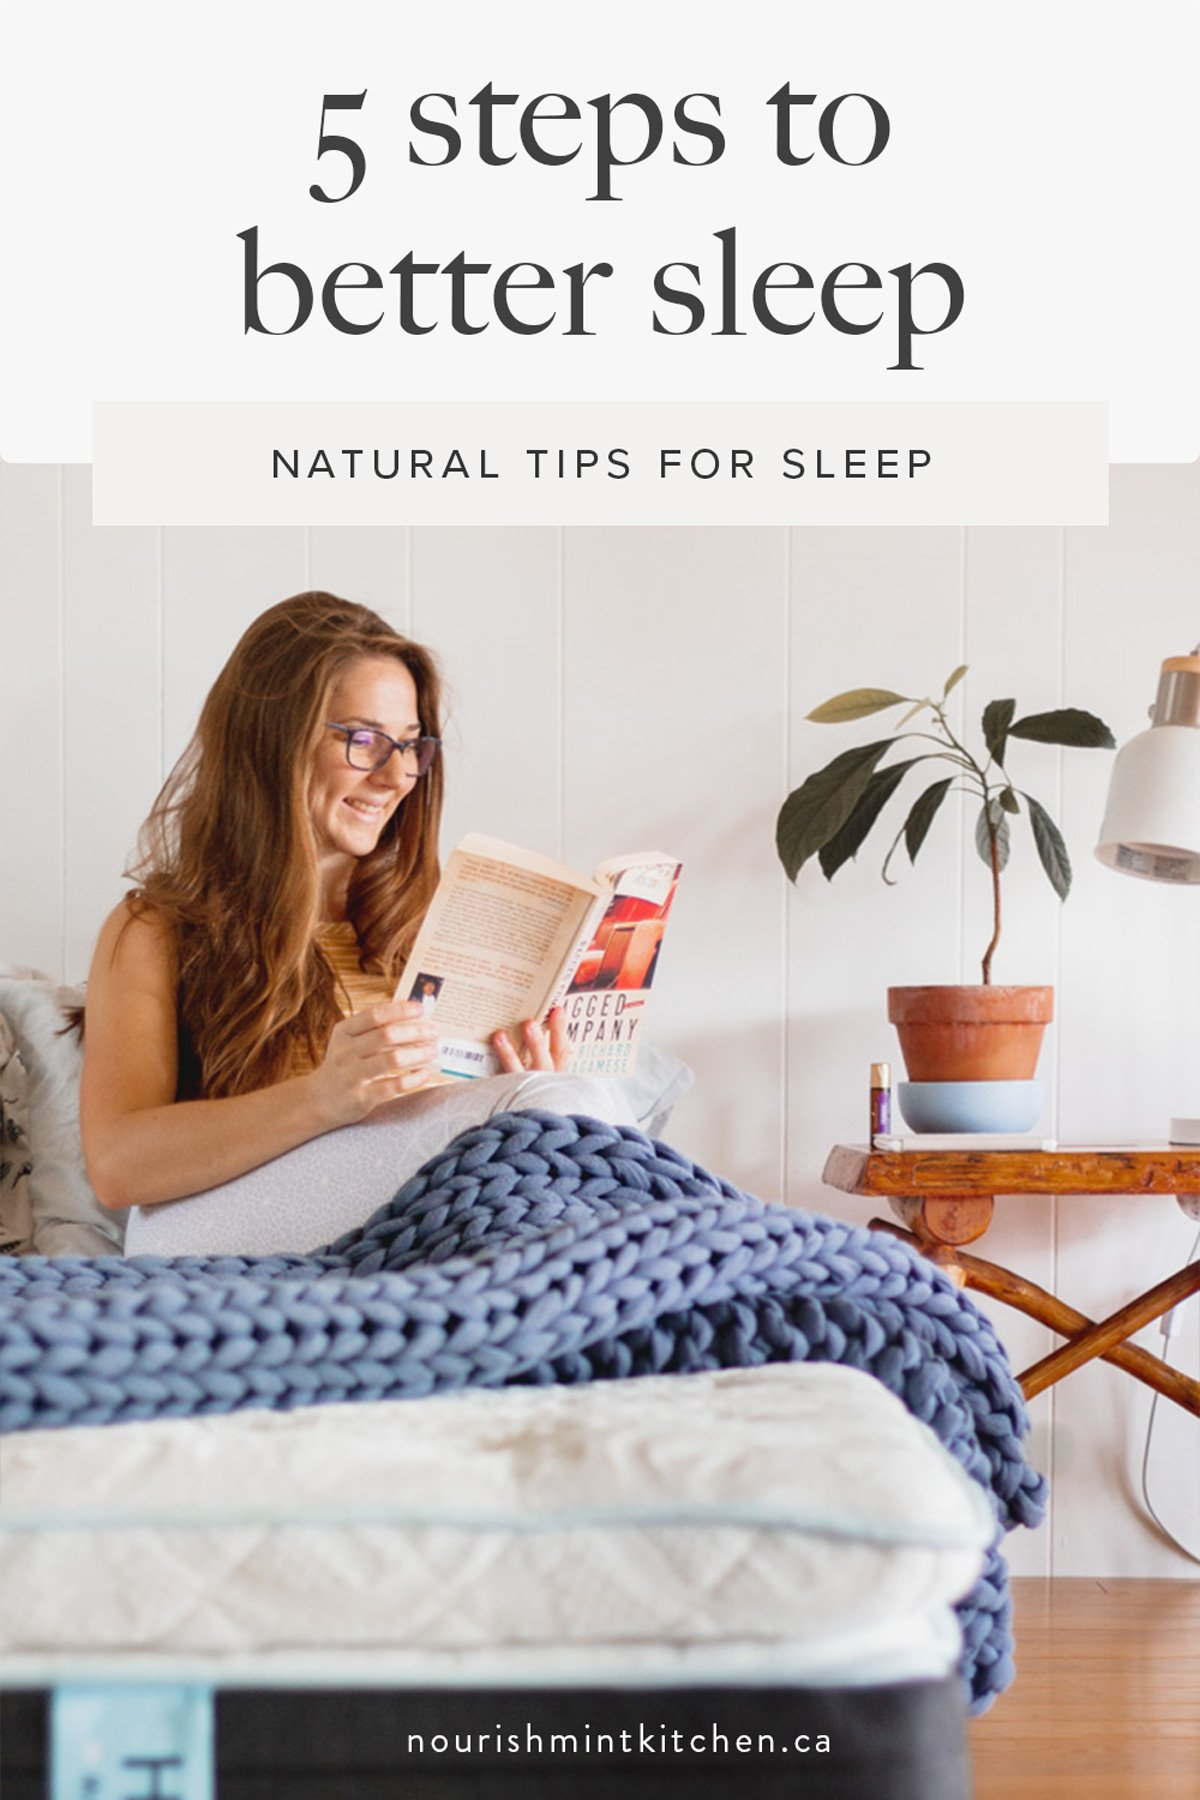 A Holistic Nutritionist's Guide to Sleep! 5 tips for better sleep to help you kick insomnia and get a better night's rest!